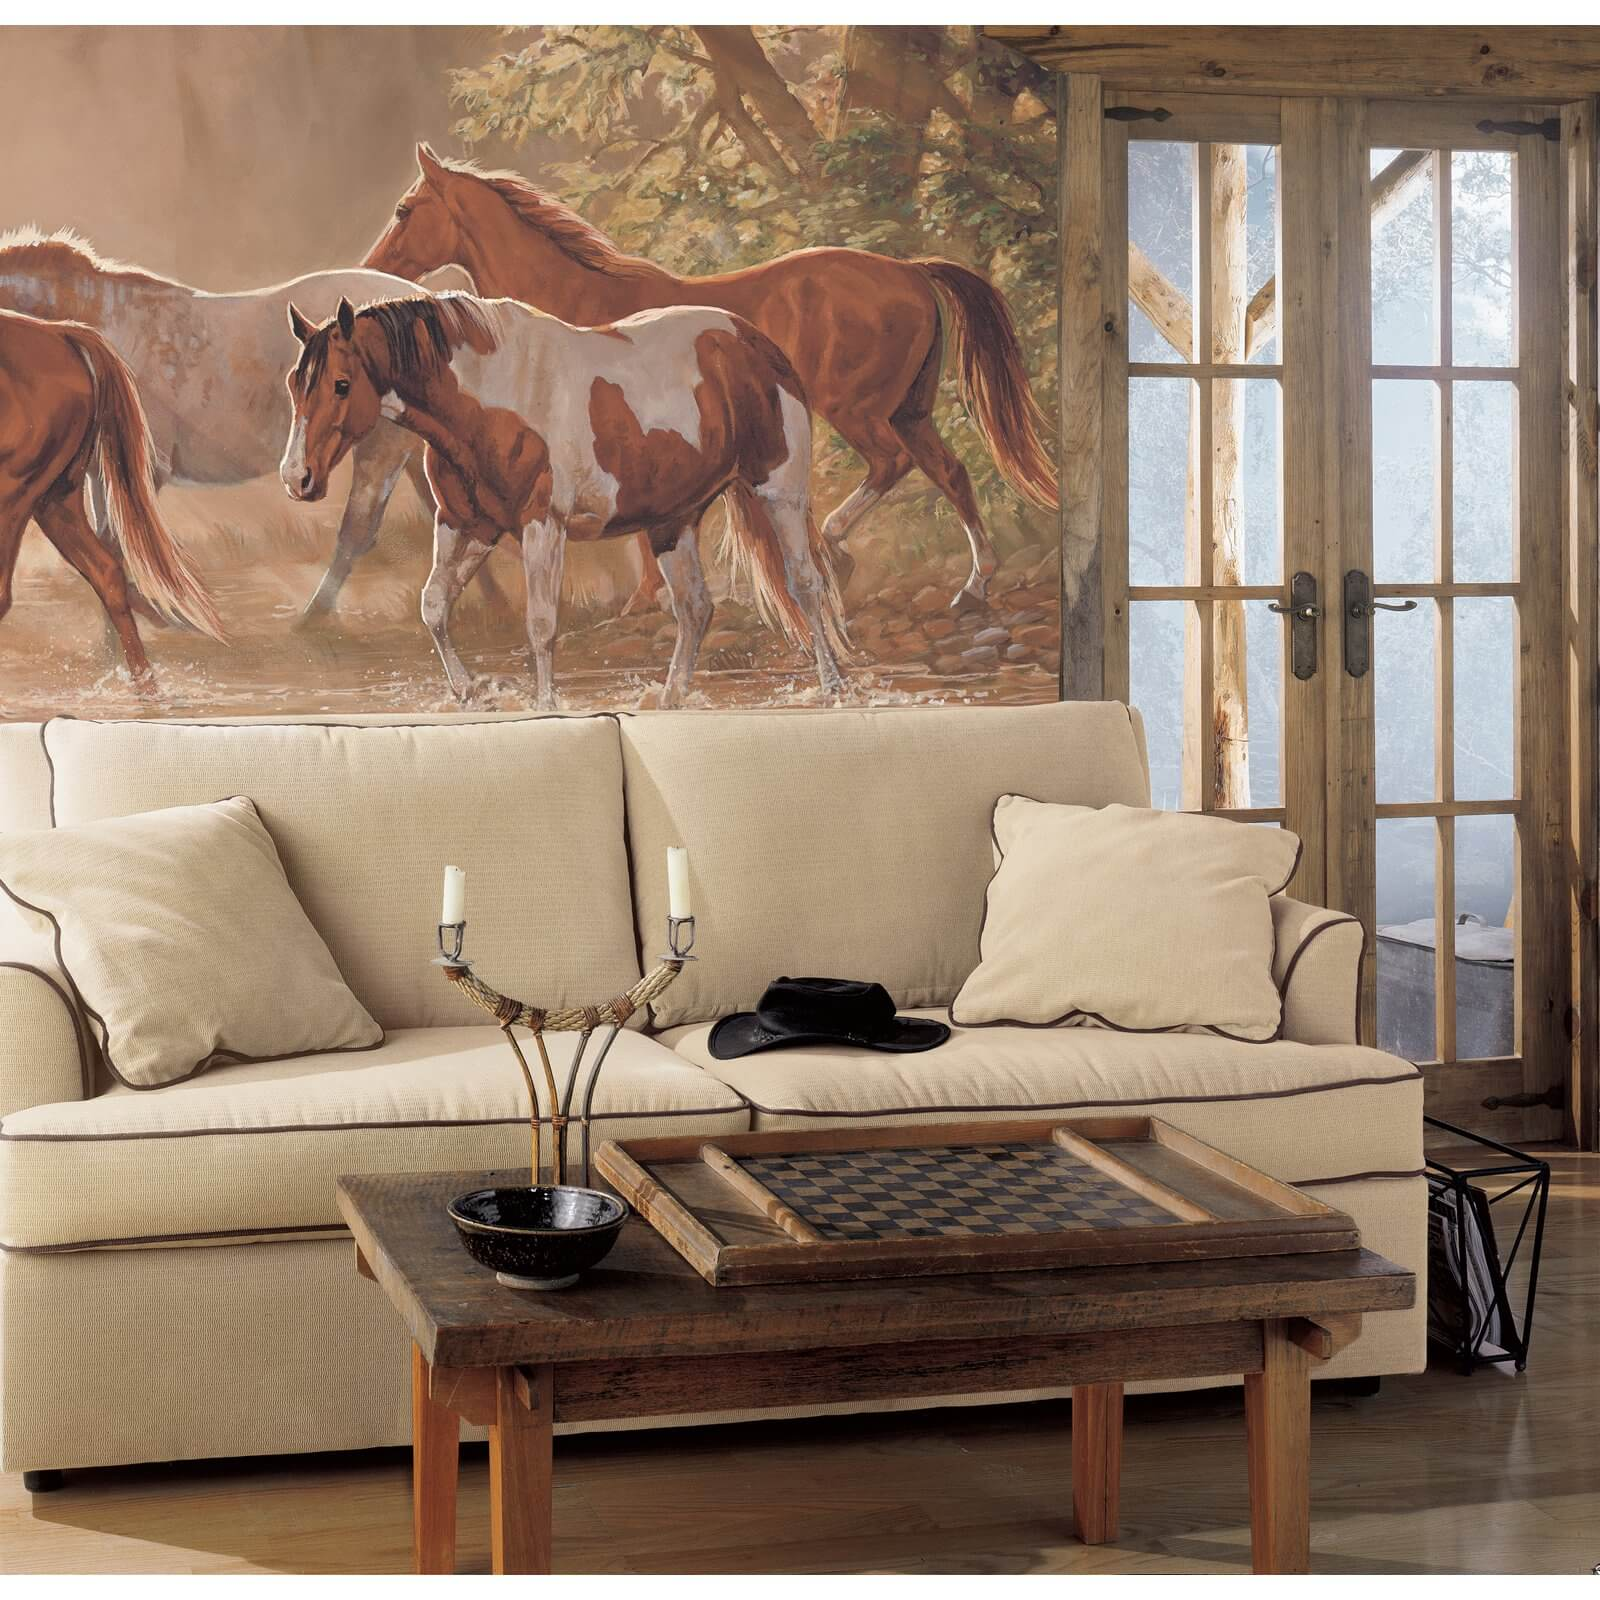 Here we see an amazing piece of art as a backdrop for a western theme. Artwork and murals are a great way to be creative in your space and tie together any theme you may have in your room.